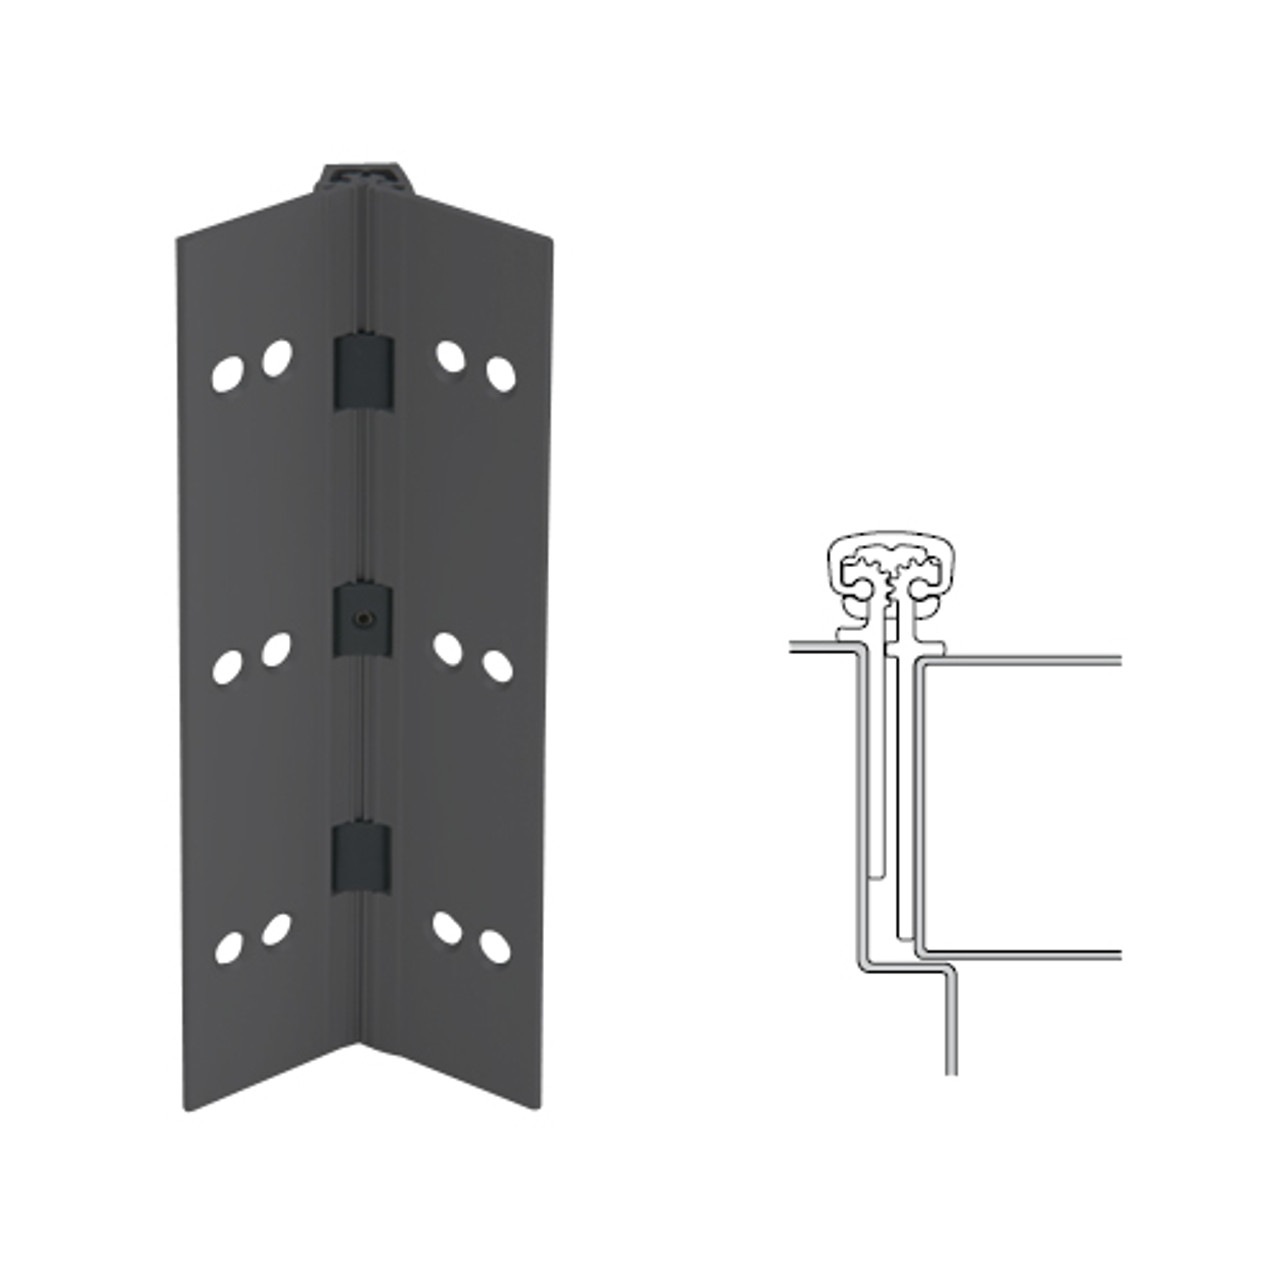 026XY-315AN-83-HT IVES Full Mortise Continuous Geared Hinges with Hospital Tip in Anodized Black